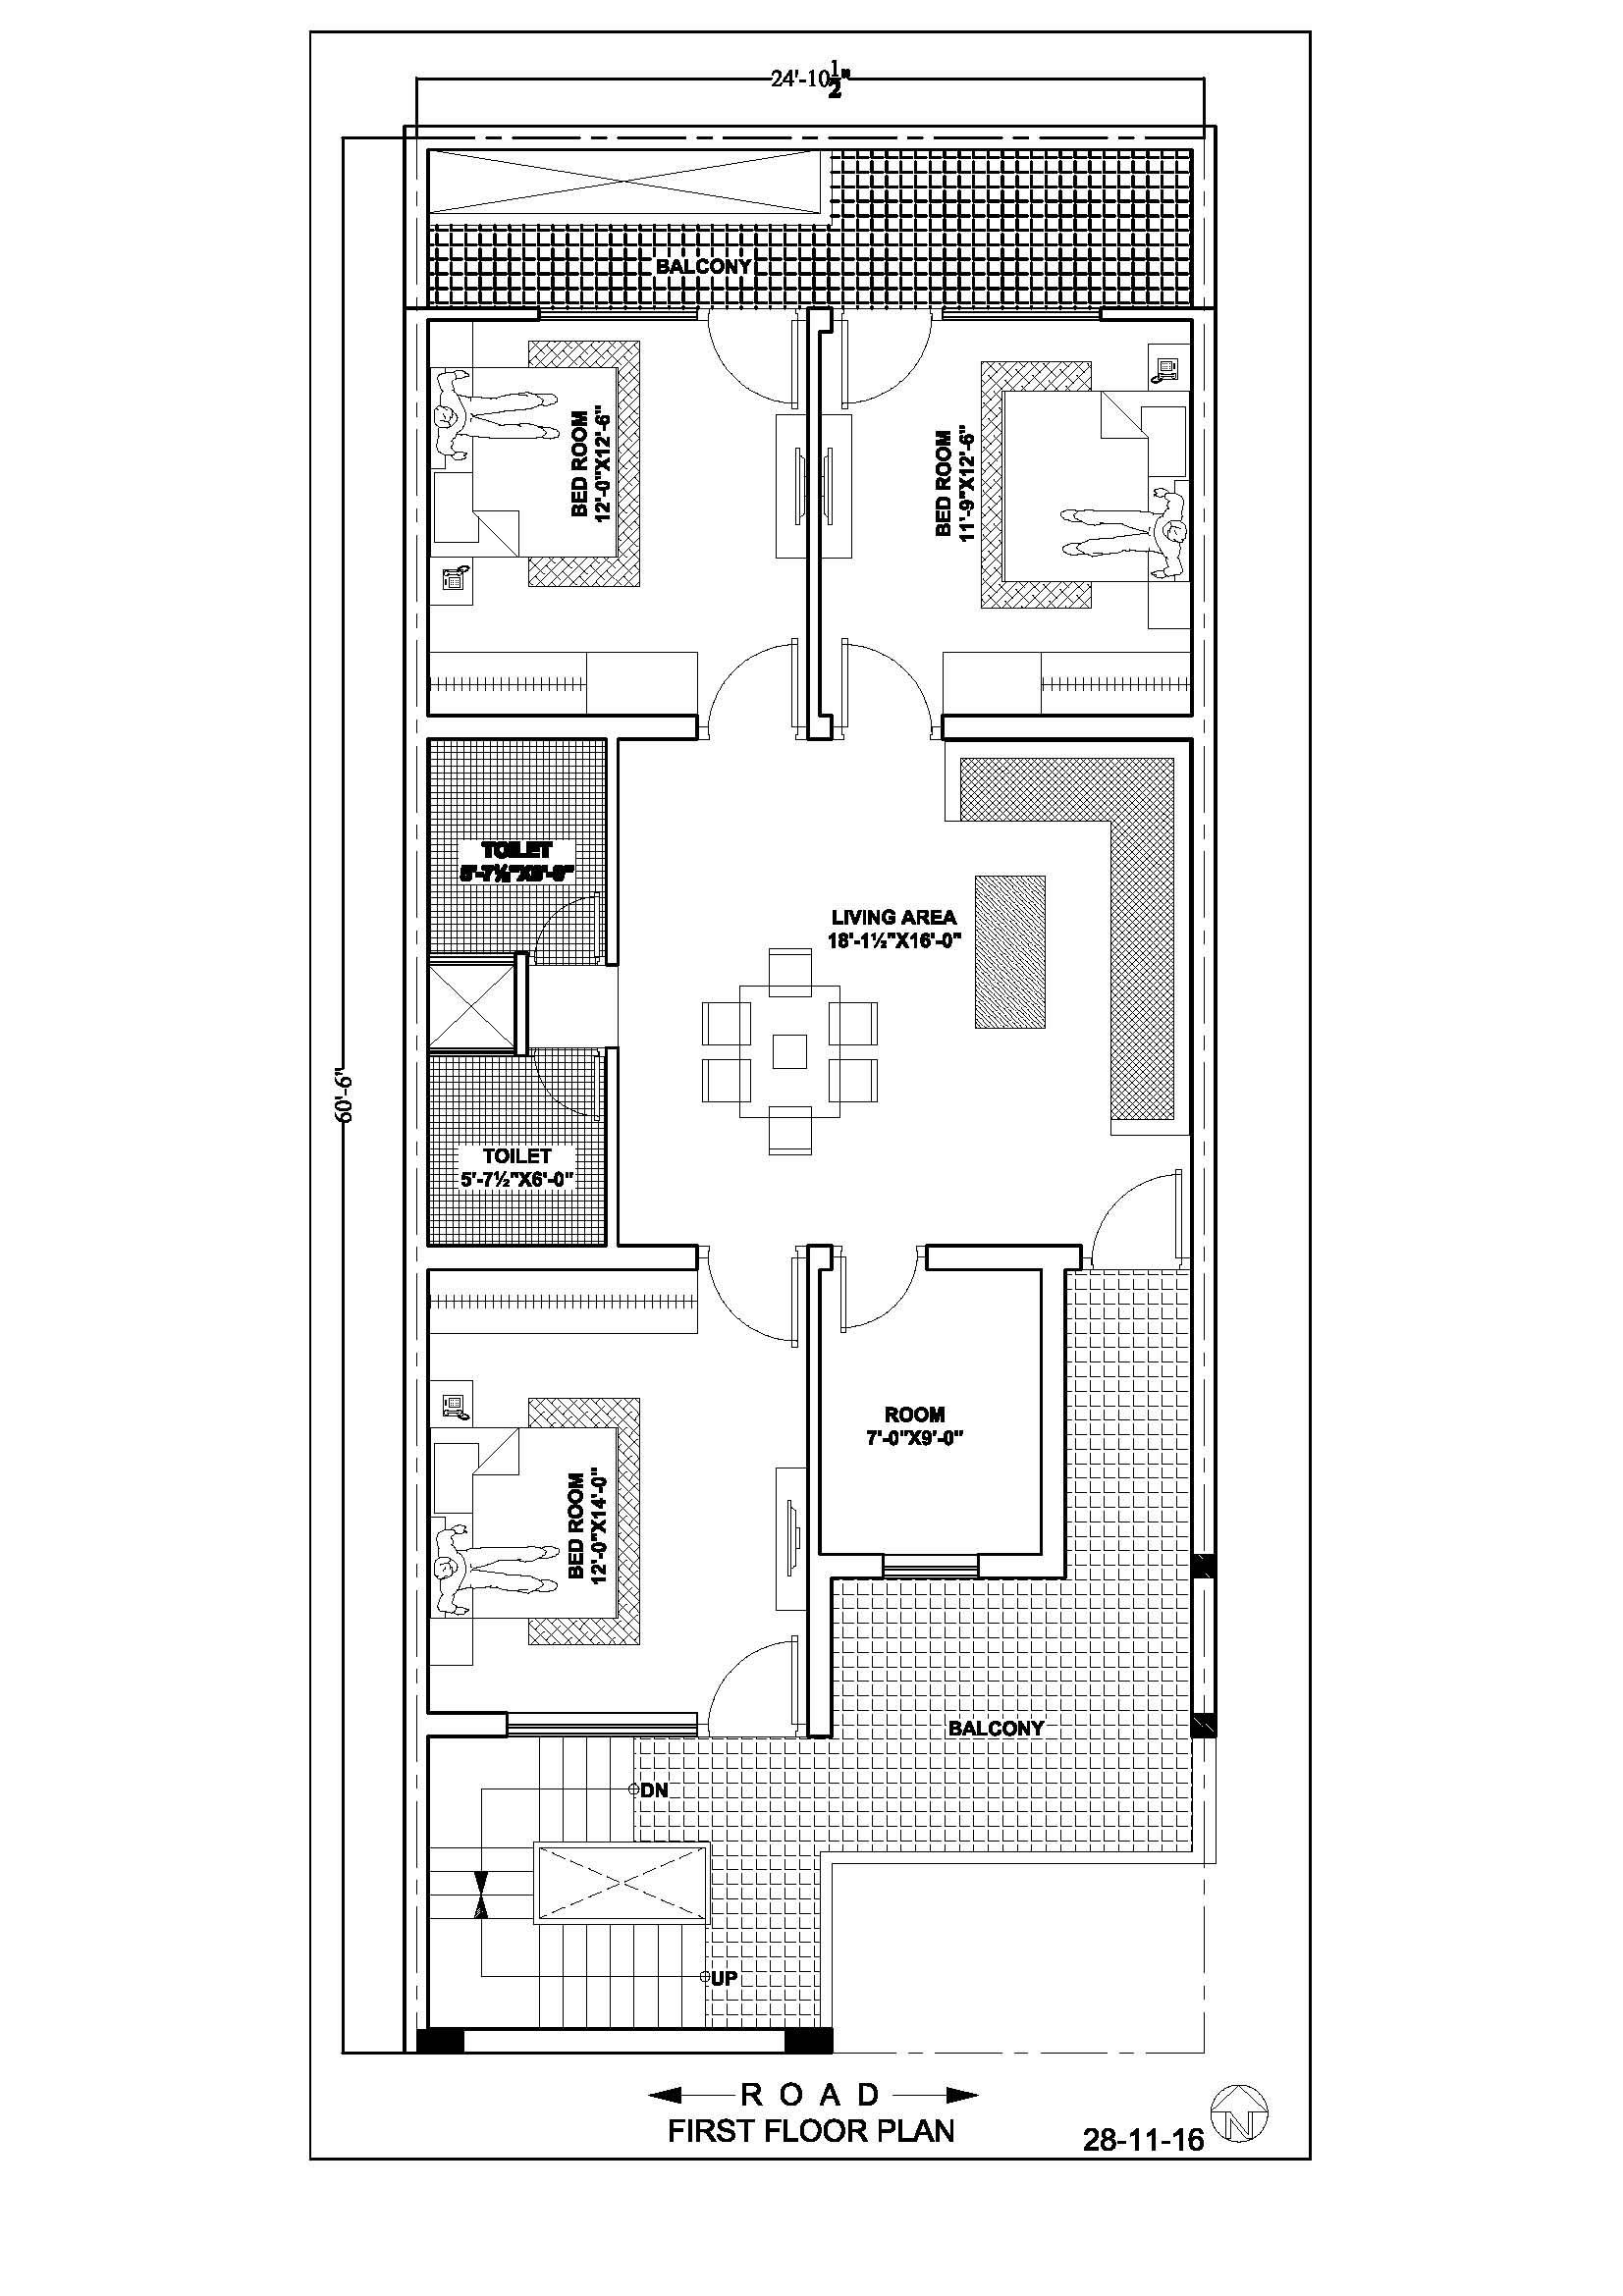 House Plans Drawing software Luxury Indian House Map Design software Susalo